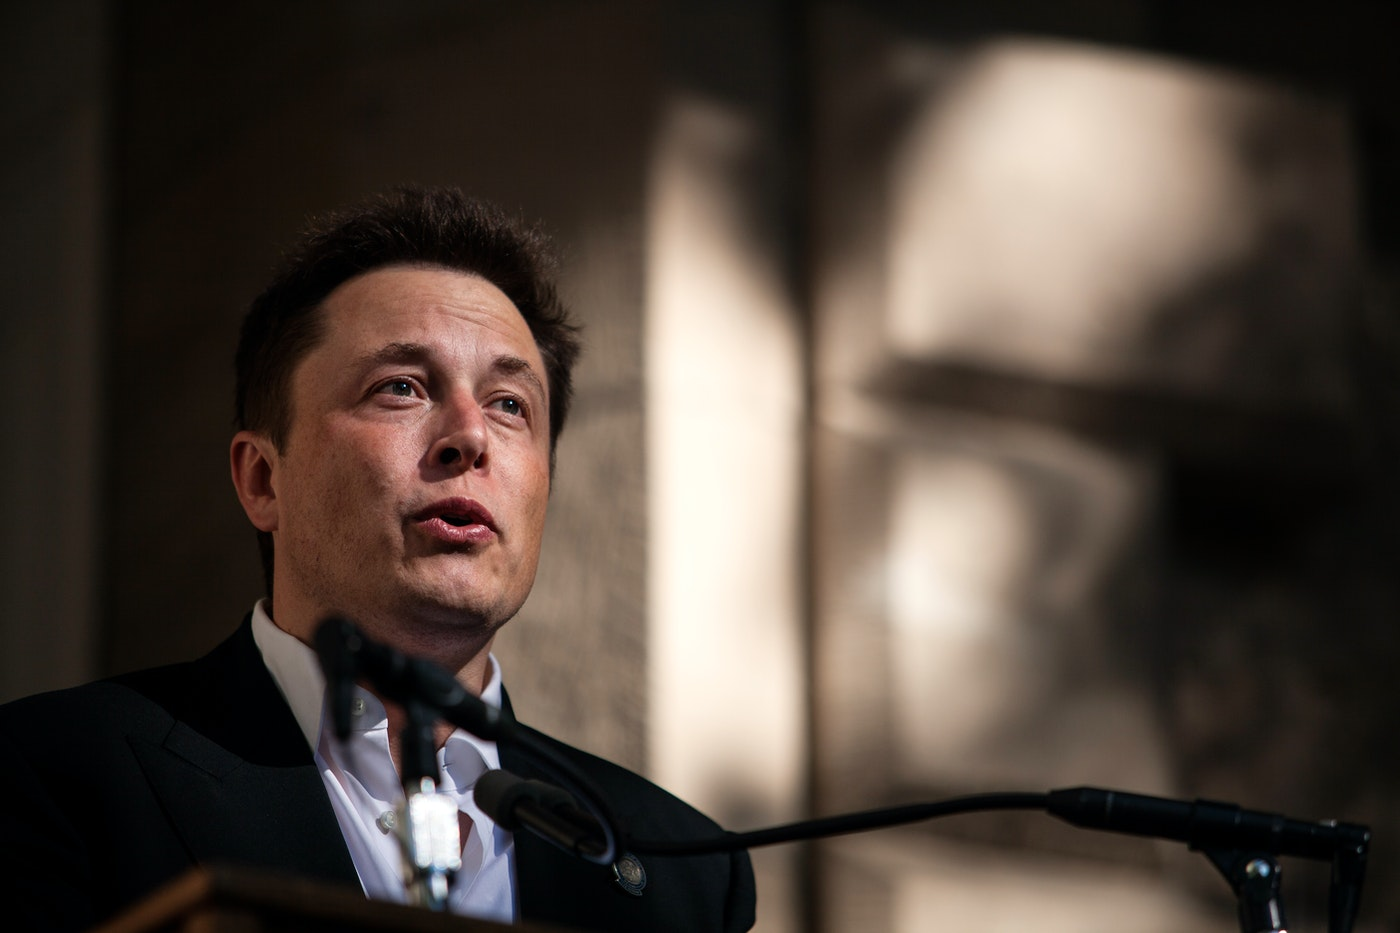 Elon Musk speaks at a press conference at the Nevada State Capitol, September 4, 2014 in Carson City, Nevada.